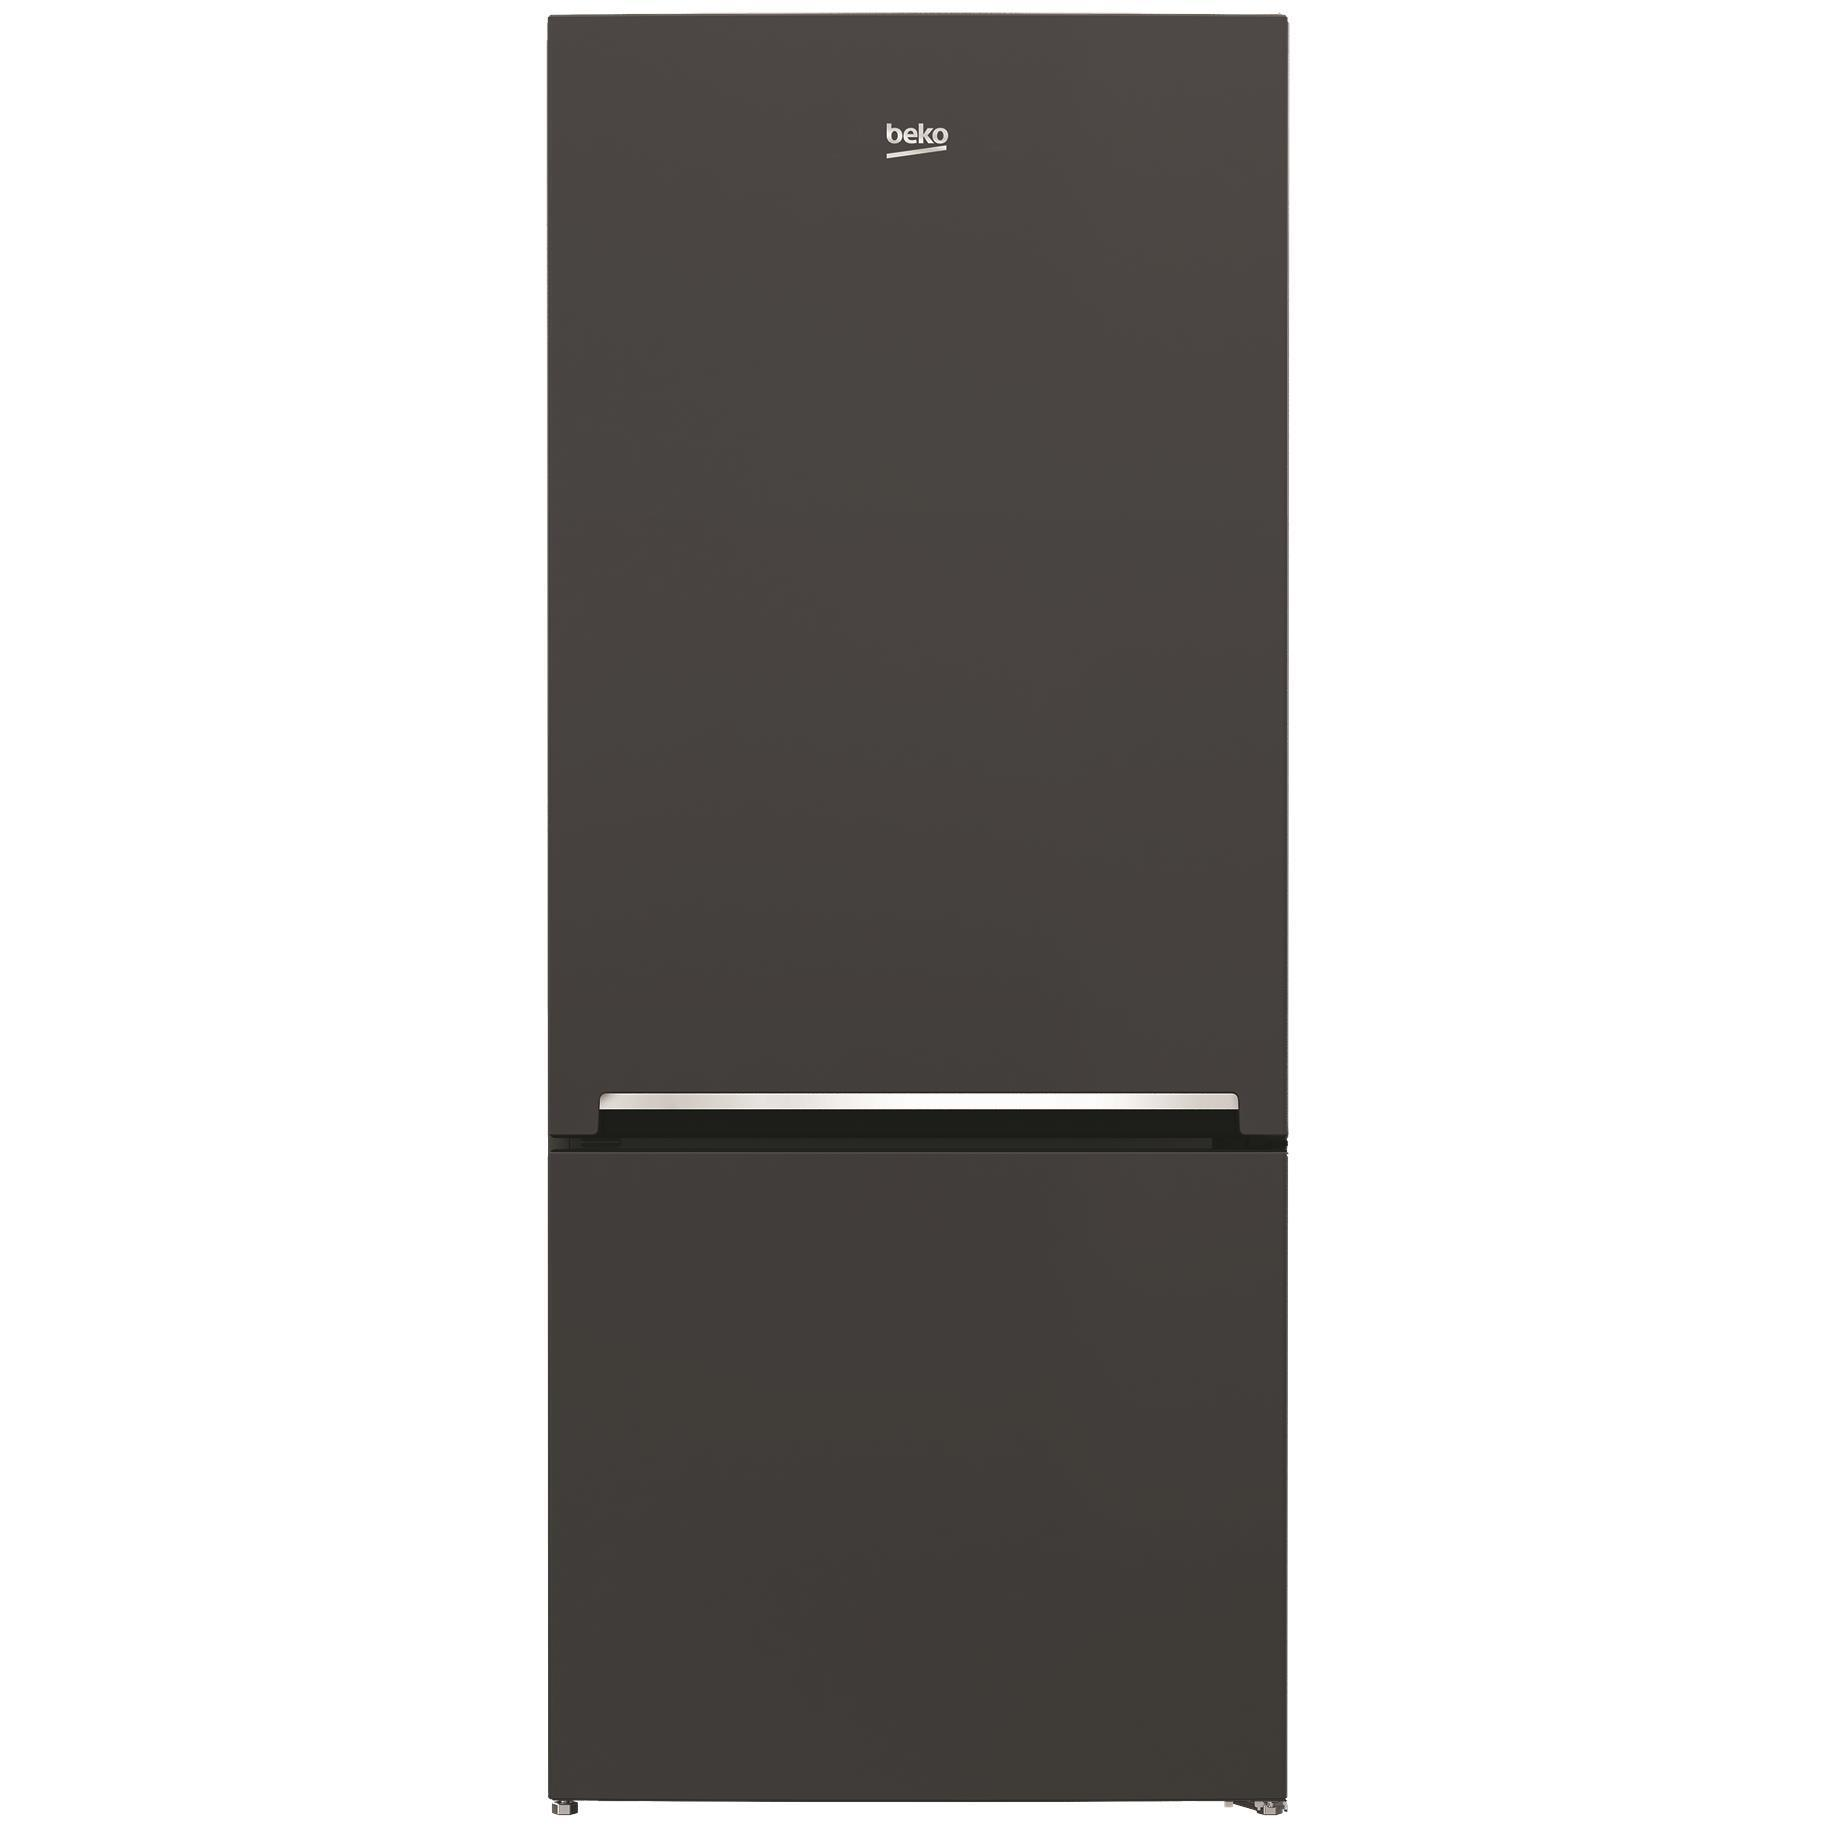 Beko BBM450AN 450L Bottom Mount Fridge (Anthracite)